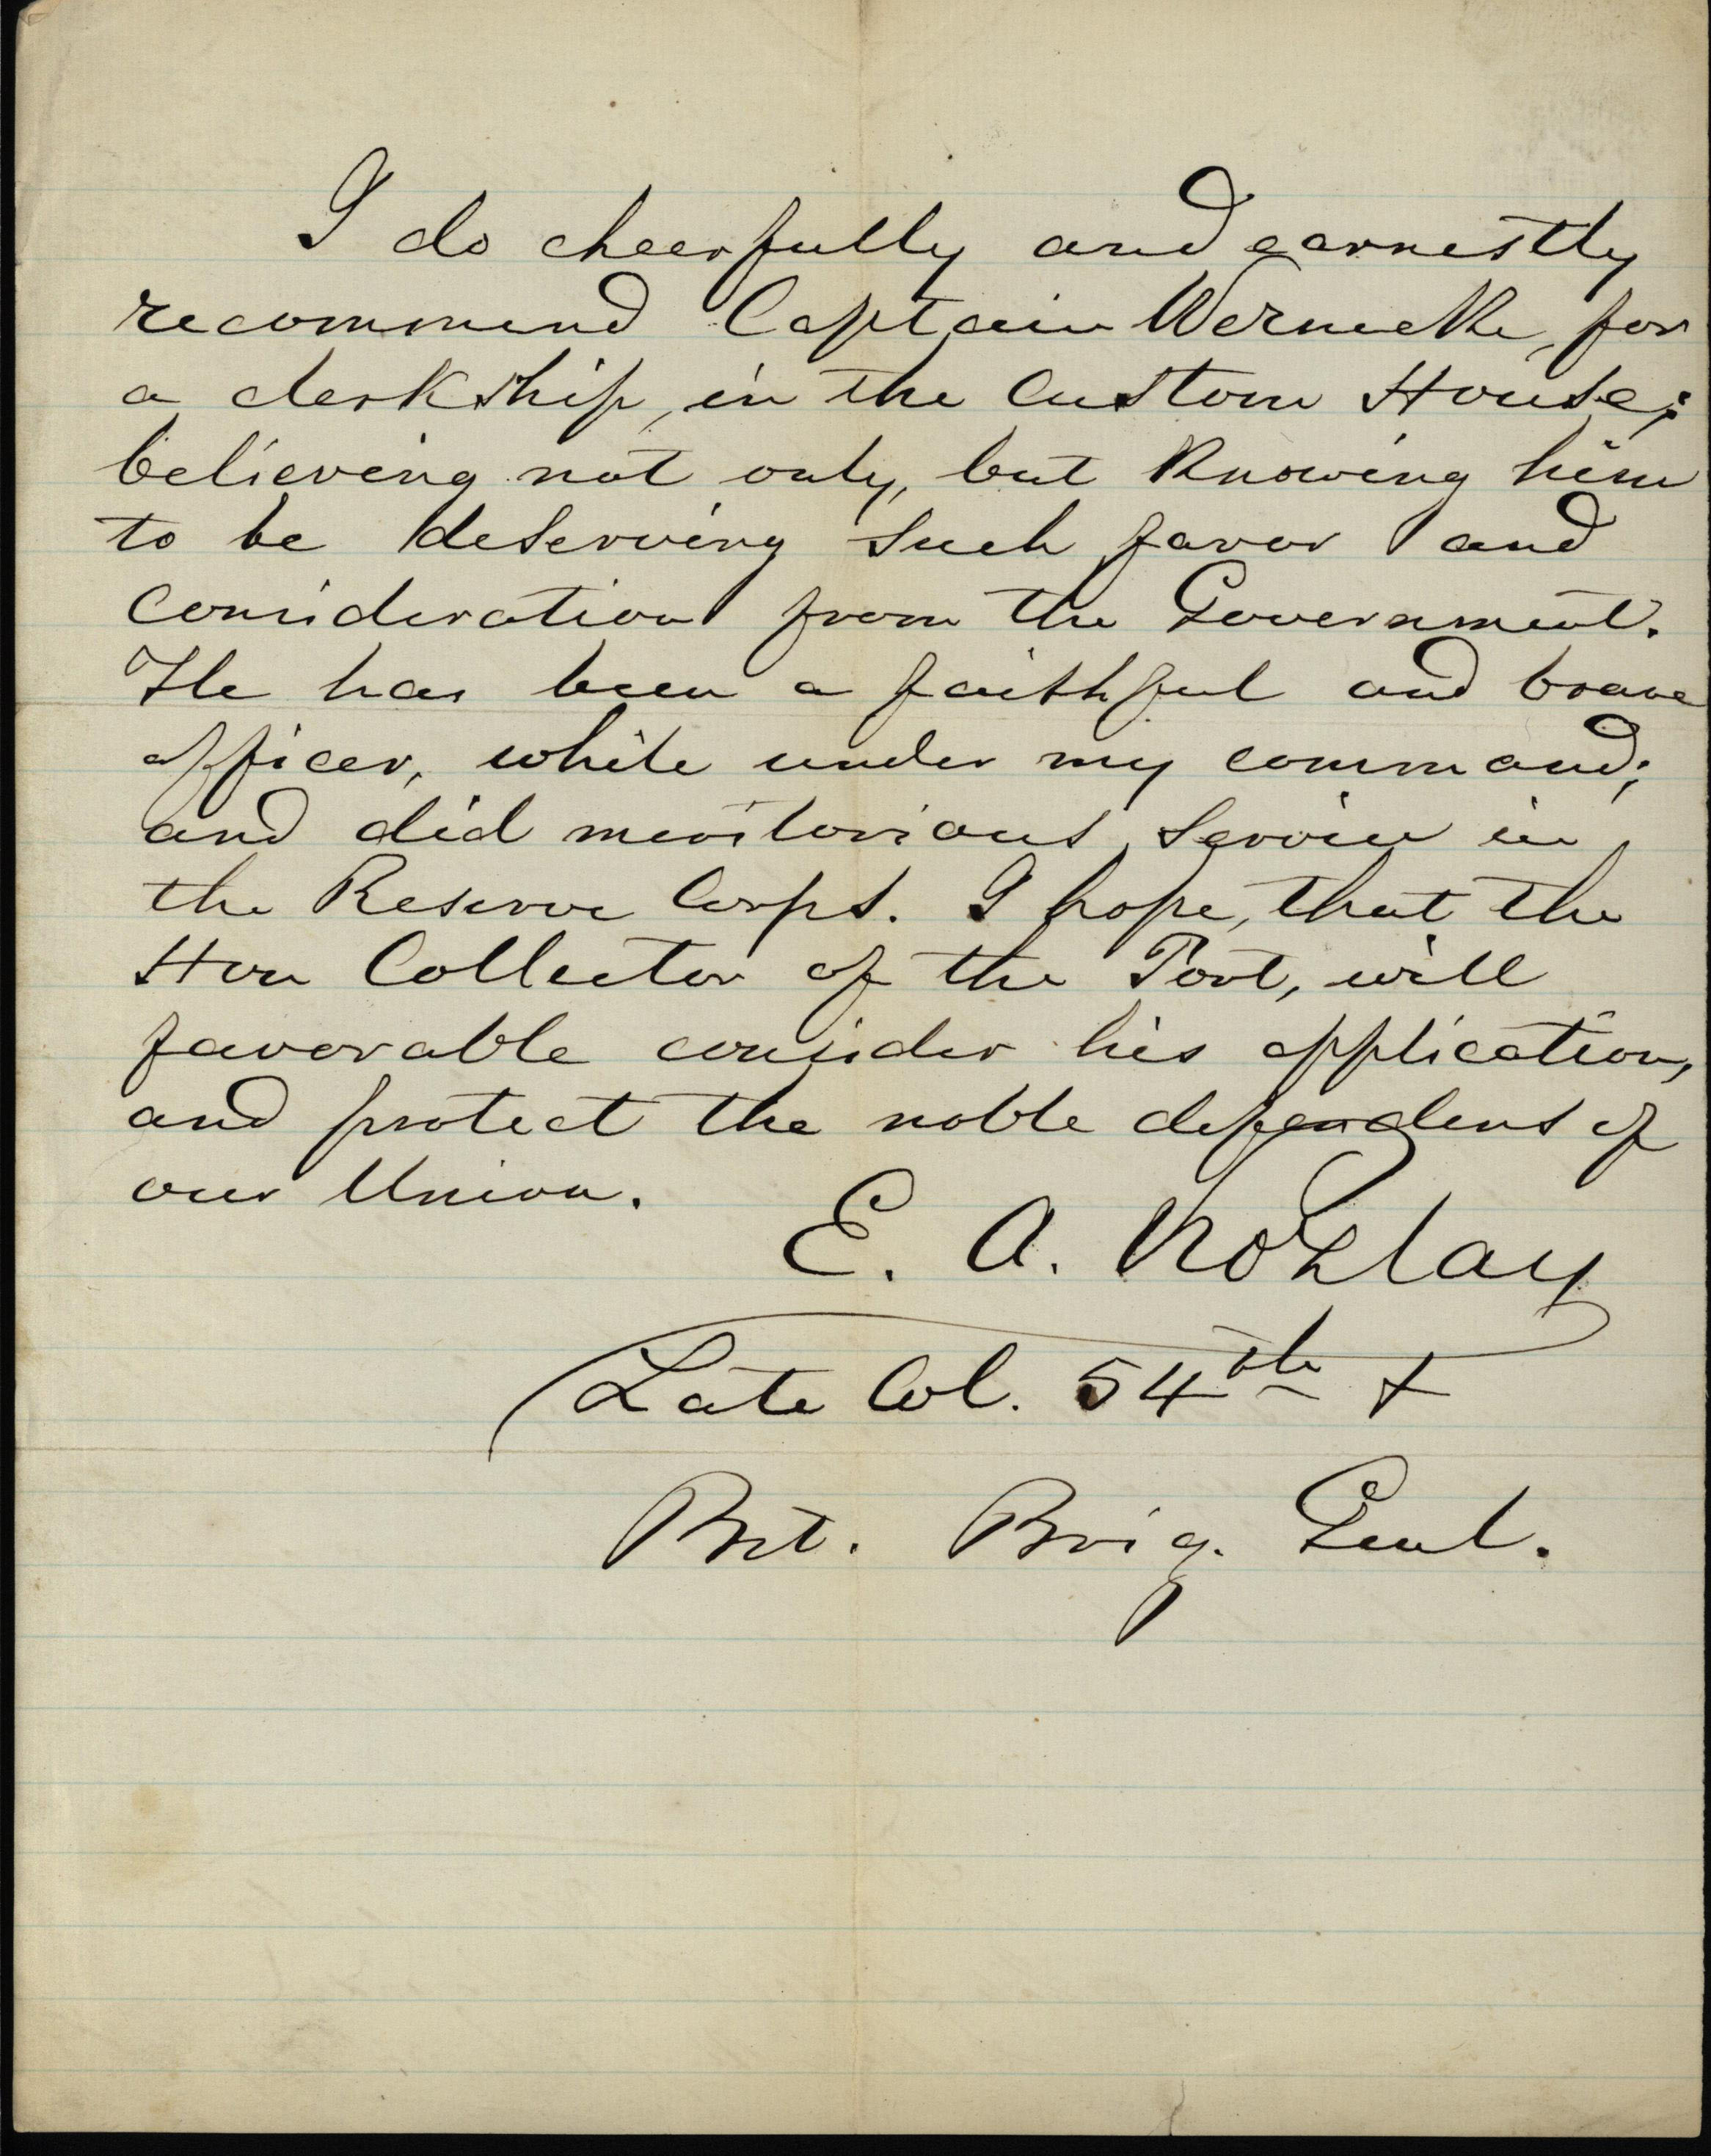 Letter to the Collector of Customs from Francis Wernick, a Civil War veteran, verso, October 1, 1866